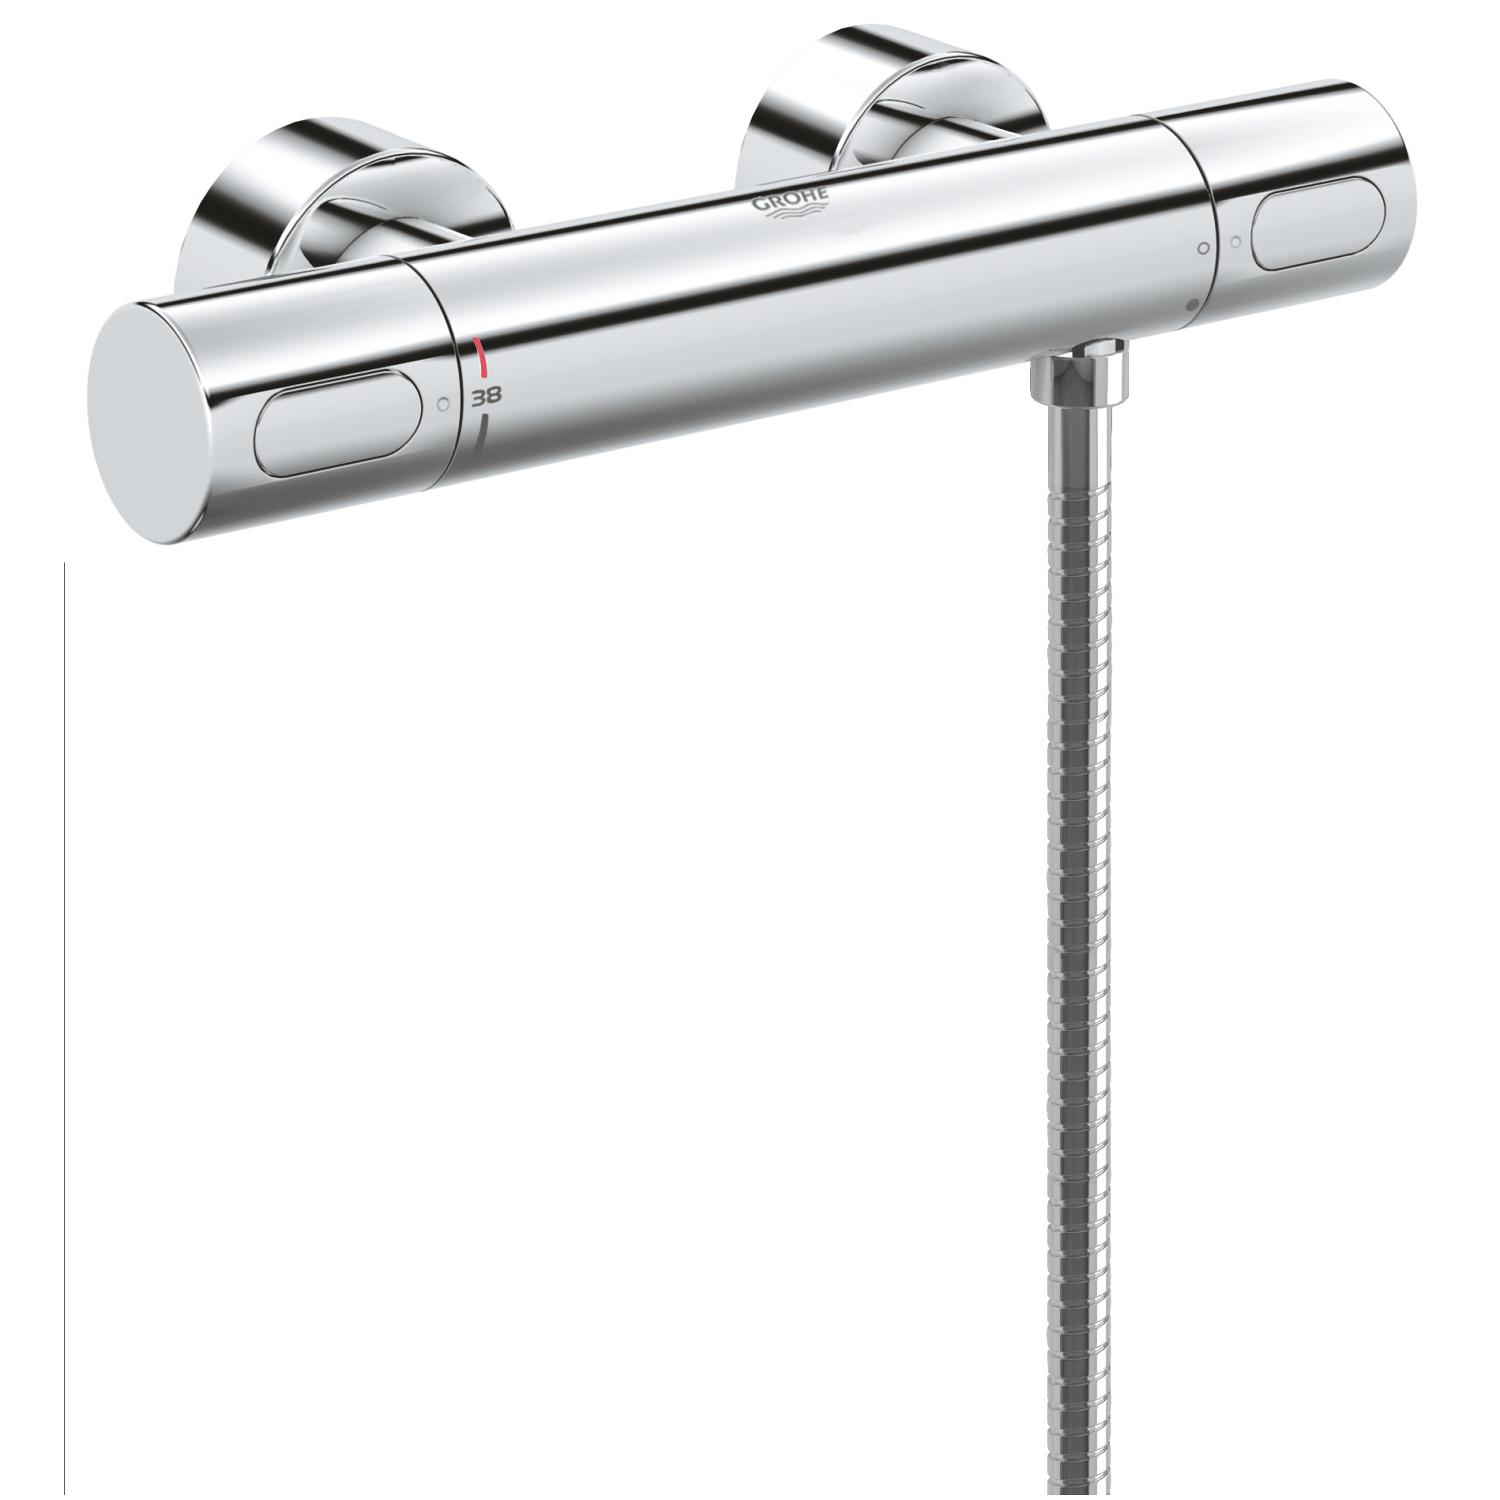 Grohtherm 3000 Cosmopolitan douchethermostaat chroom Grohe